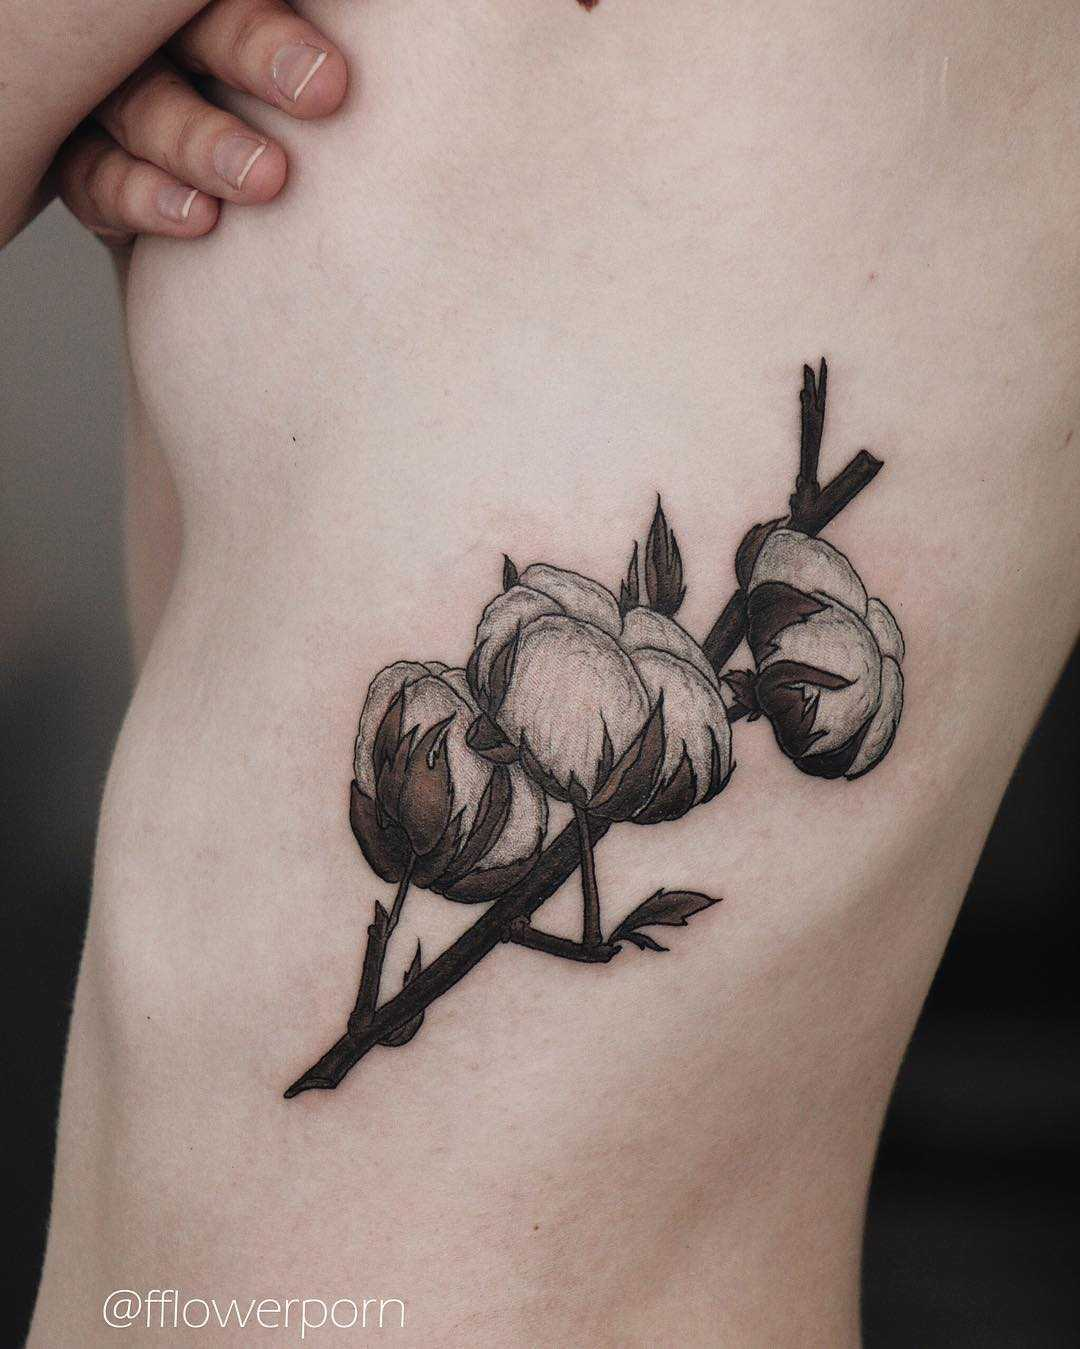 Cotton tattoo on the rib cage